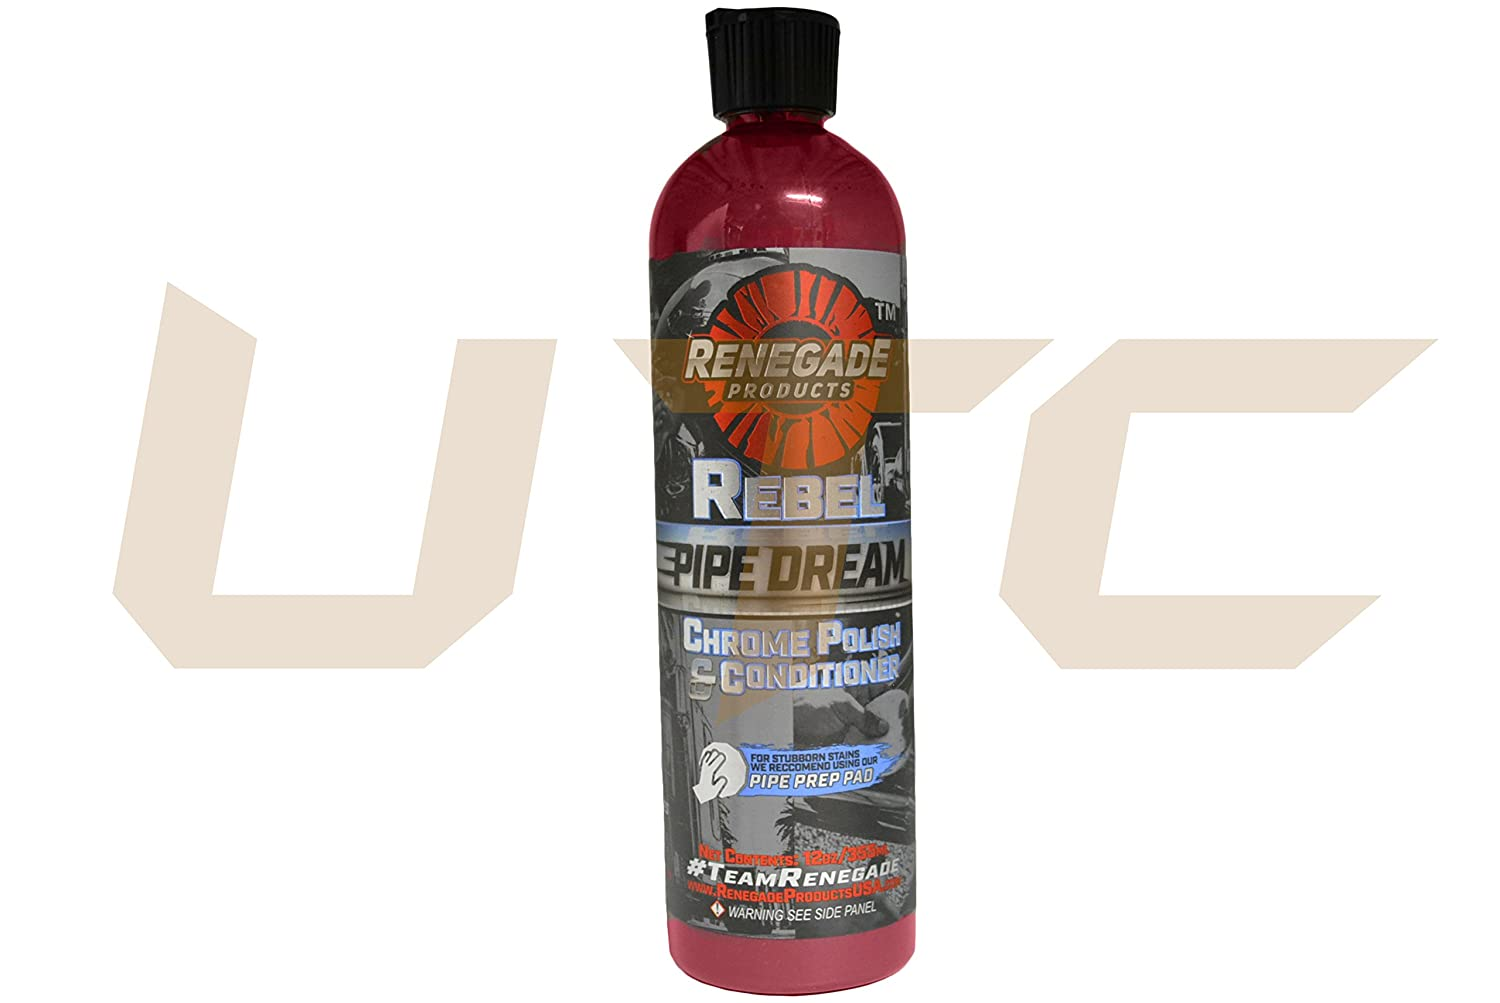 12 Oz Bottle Rebel Pipe Dream Chrome Polish Conditioner Restore Renegade Products USA Shine Luster Maverick